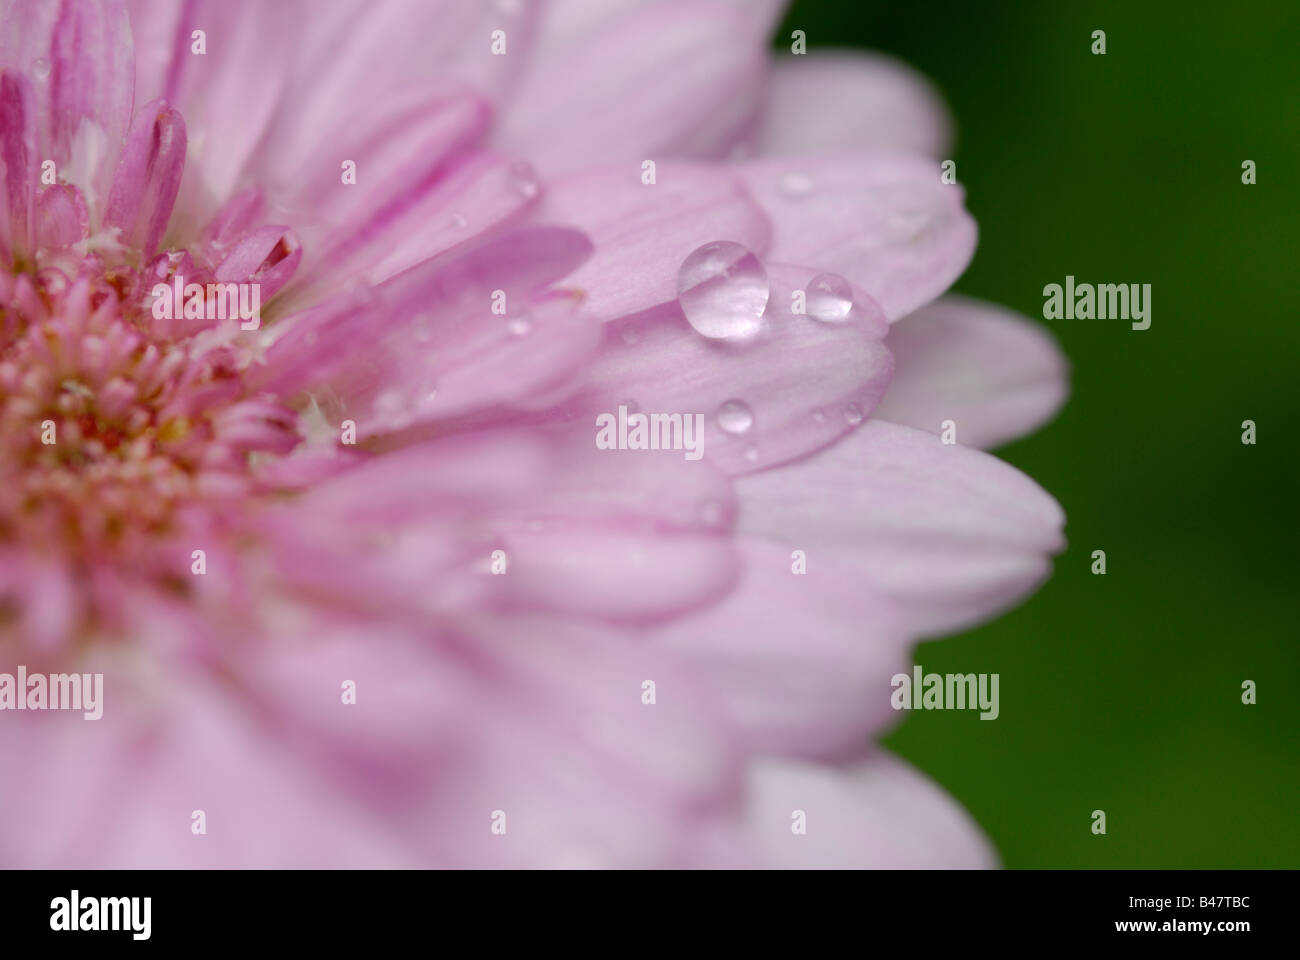 Pink Daisy with a water droplet on its petal. - Stock Image